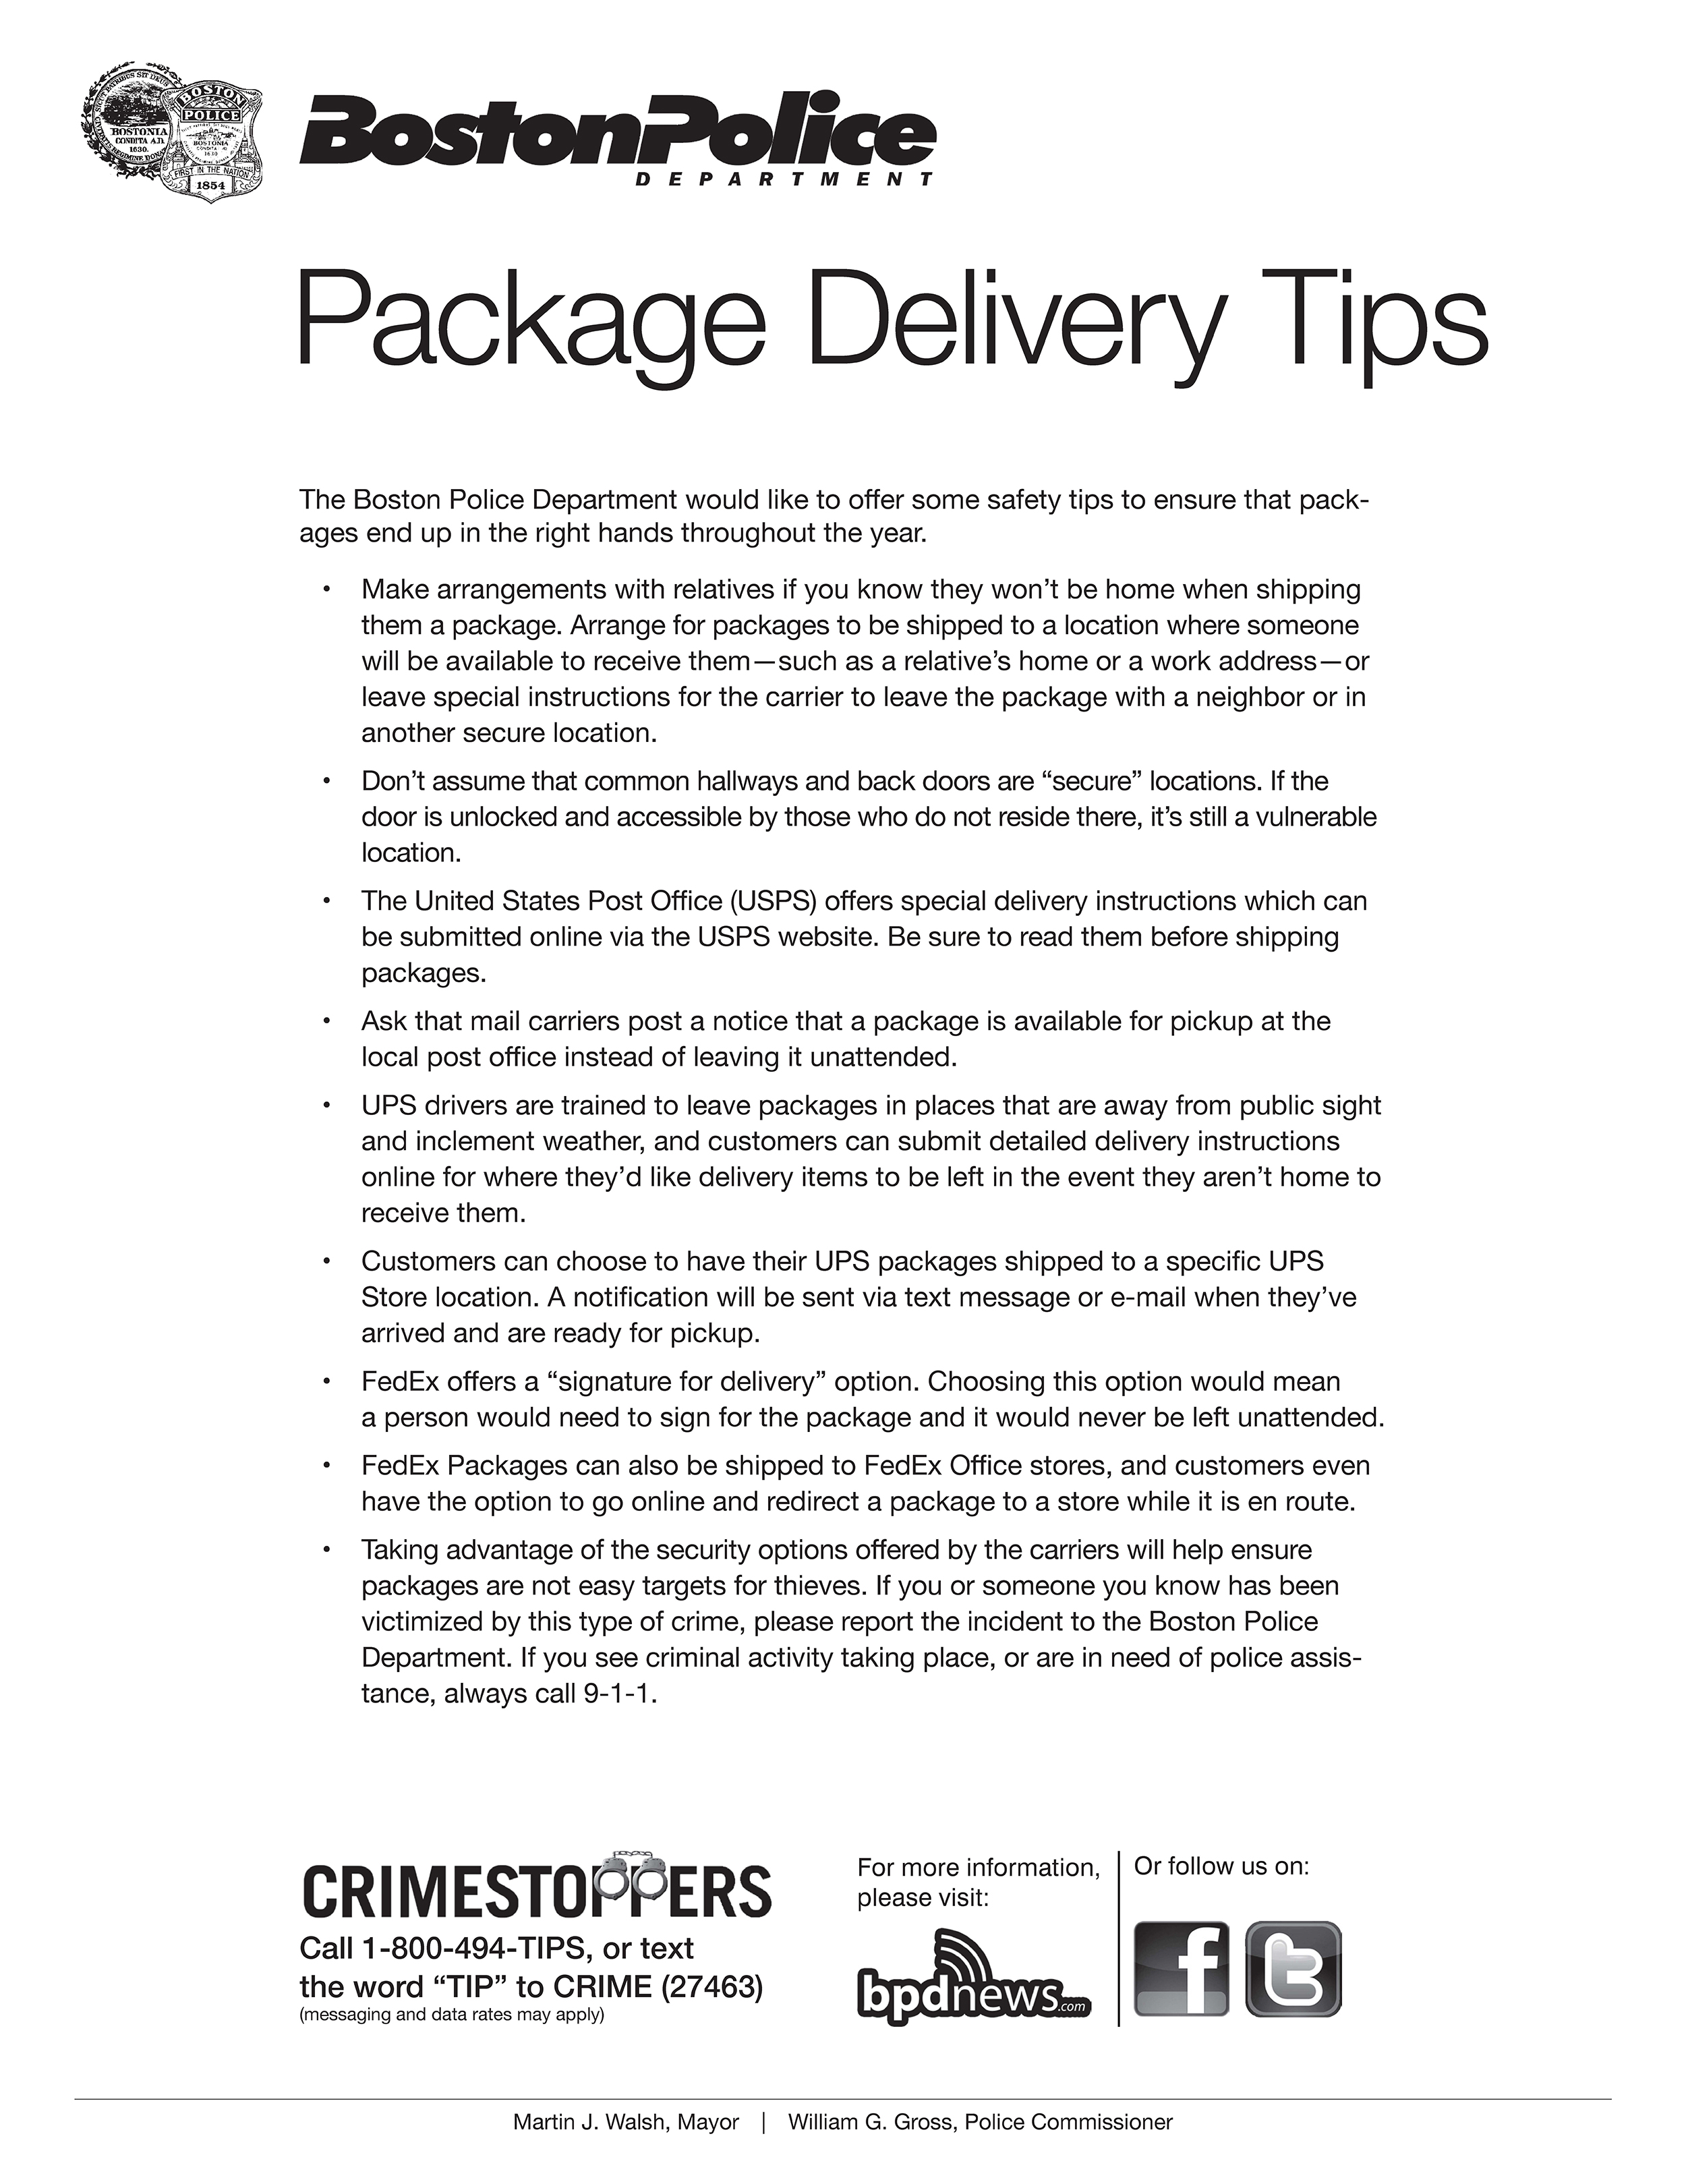 Holiday Package Deliveries (1) (2).jpg